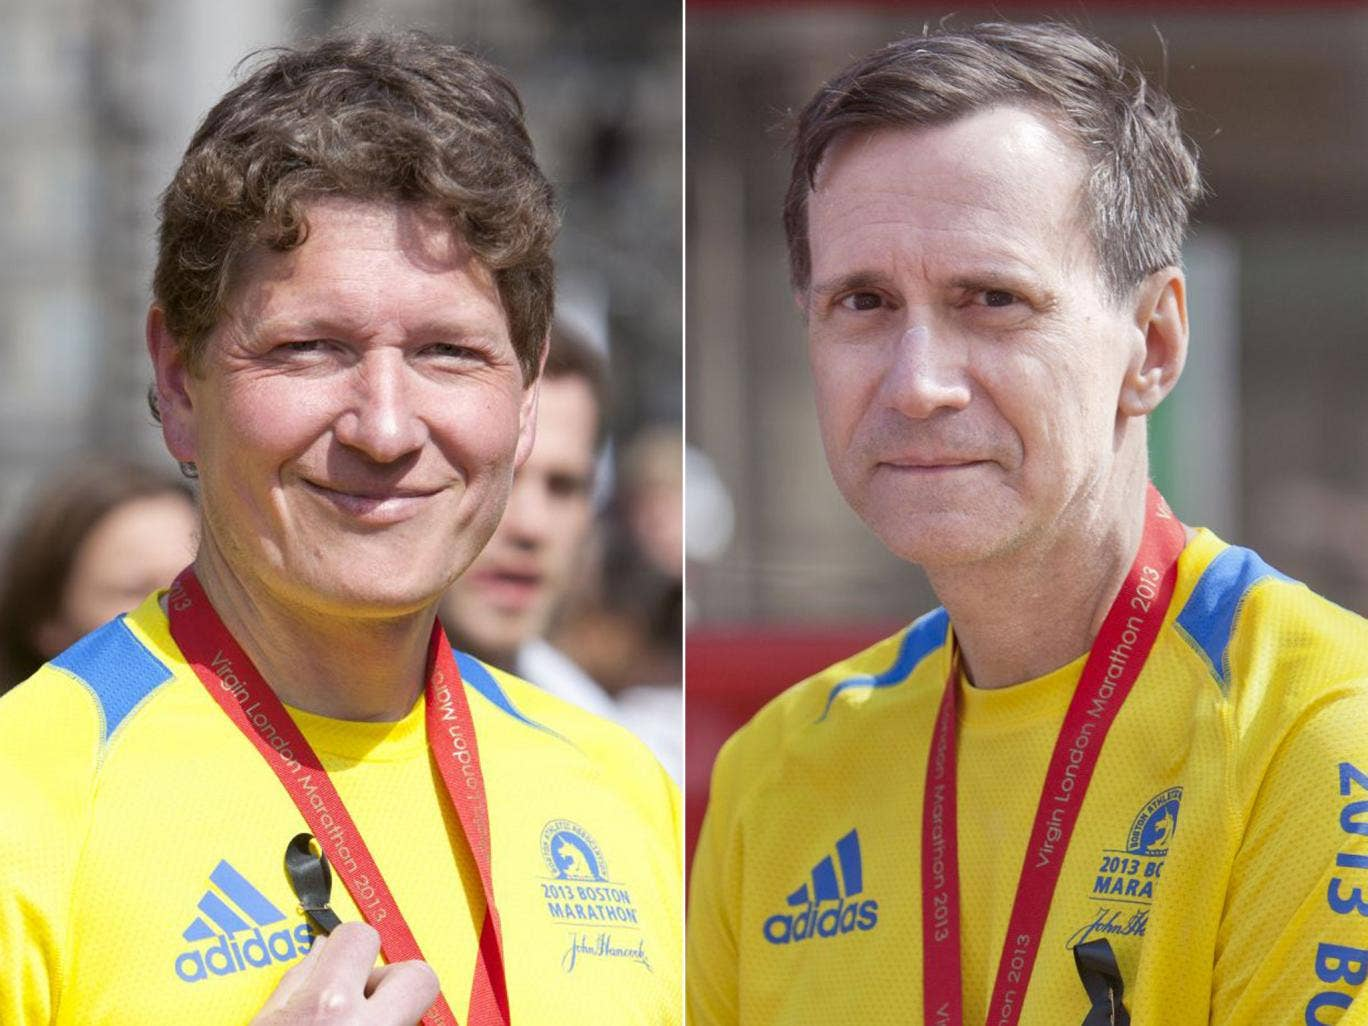 Mike Asche, left and Paul Arlt, right, both ran the Boston and London Marathons